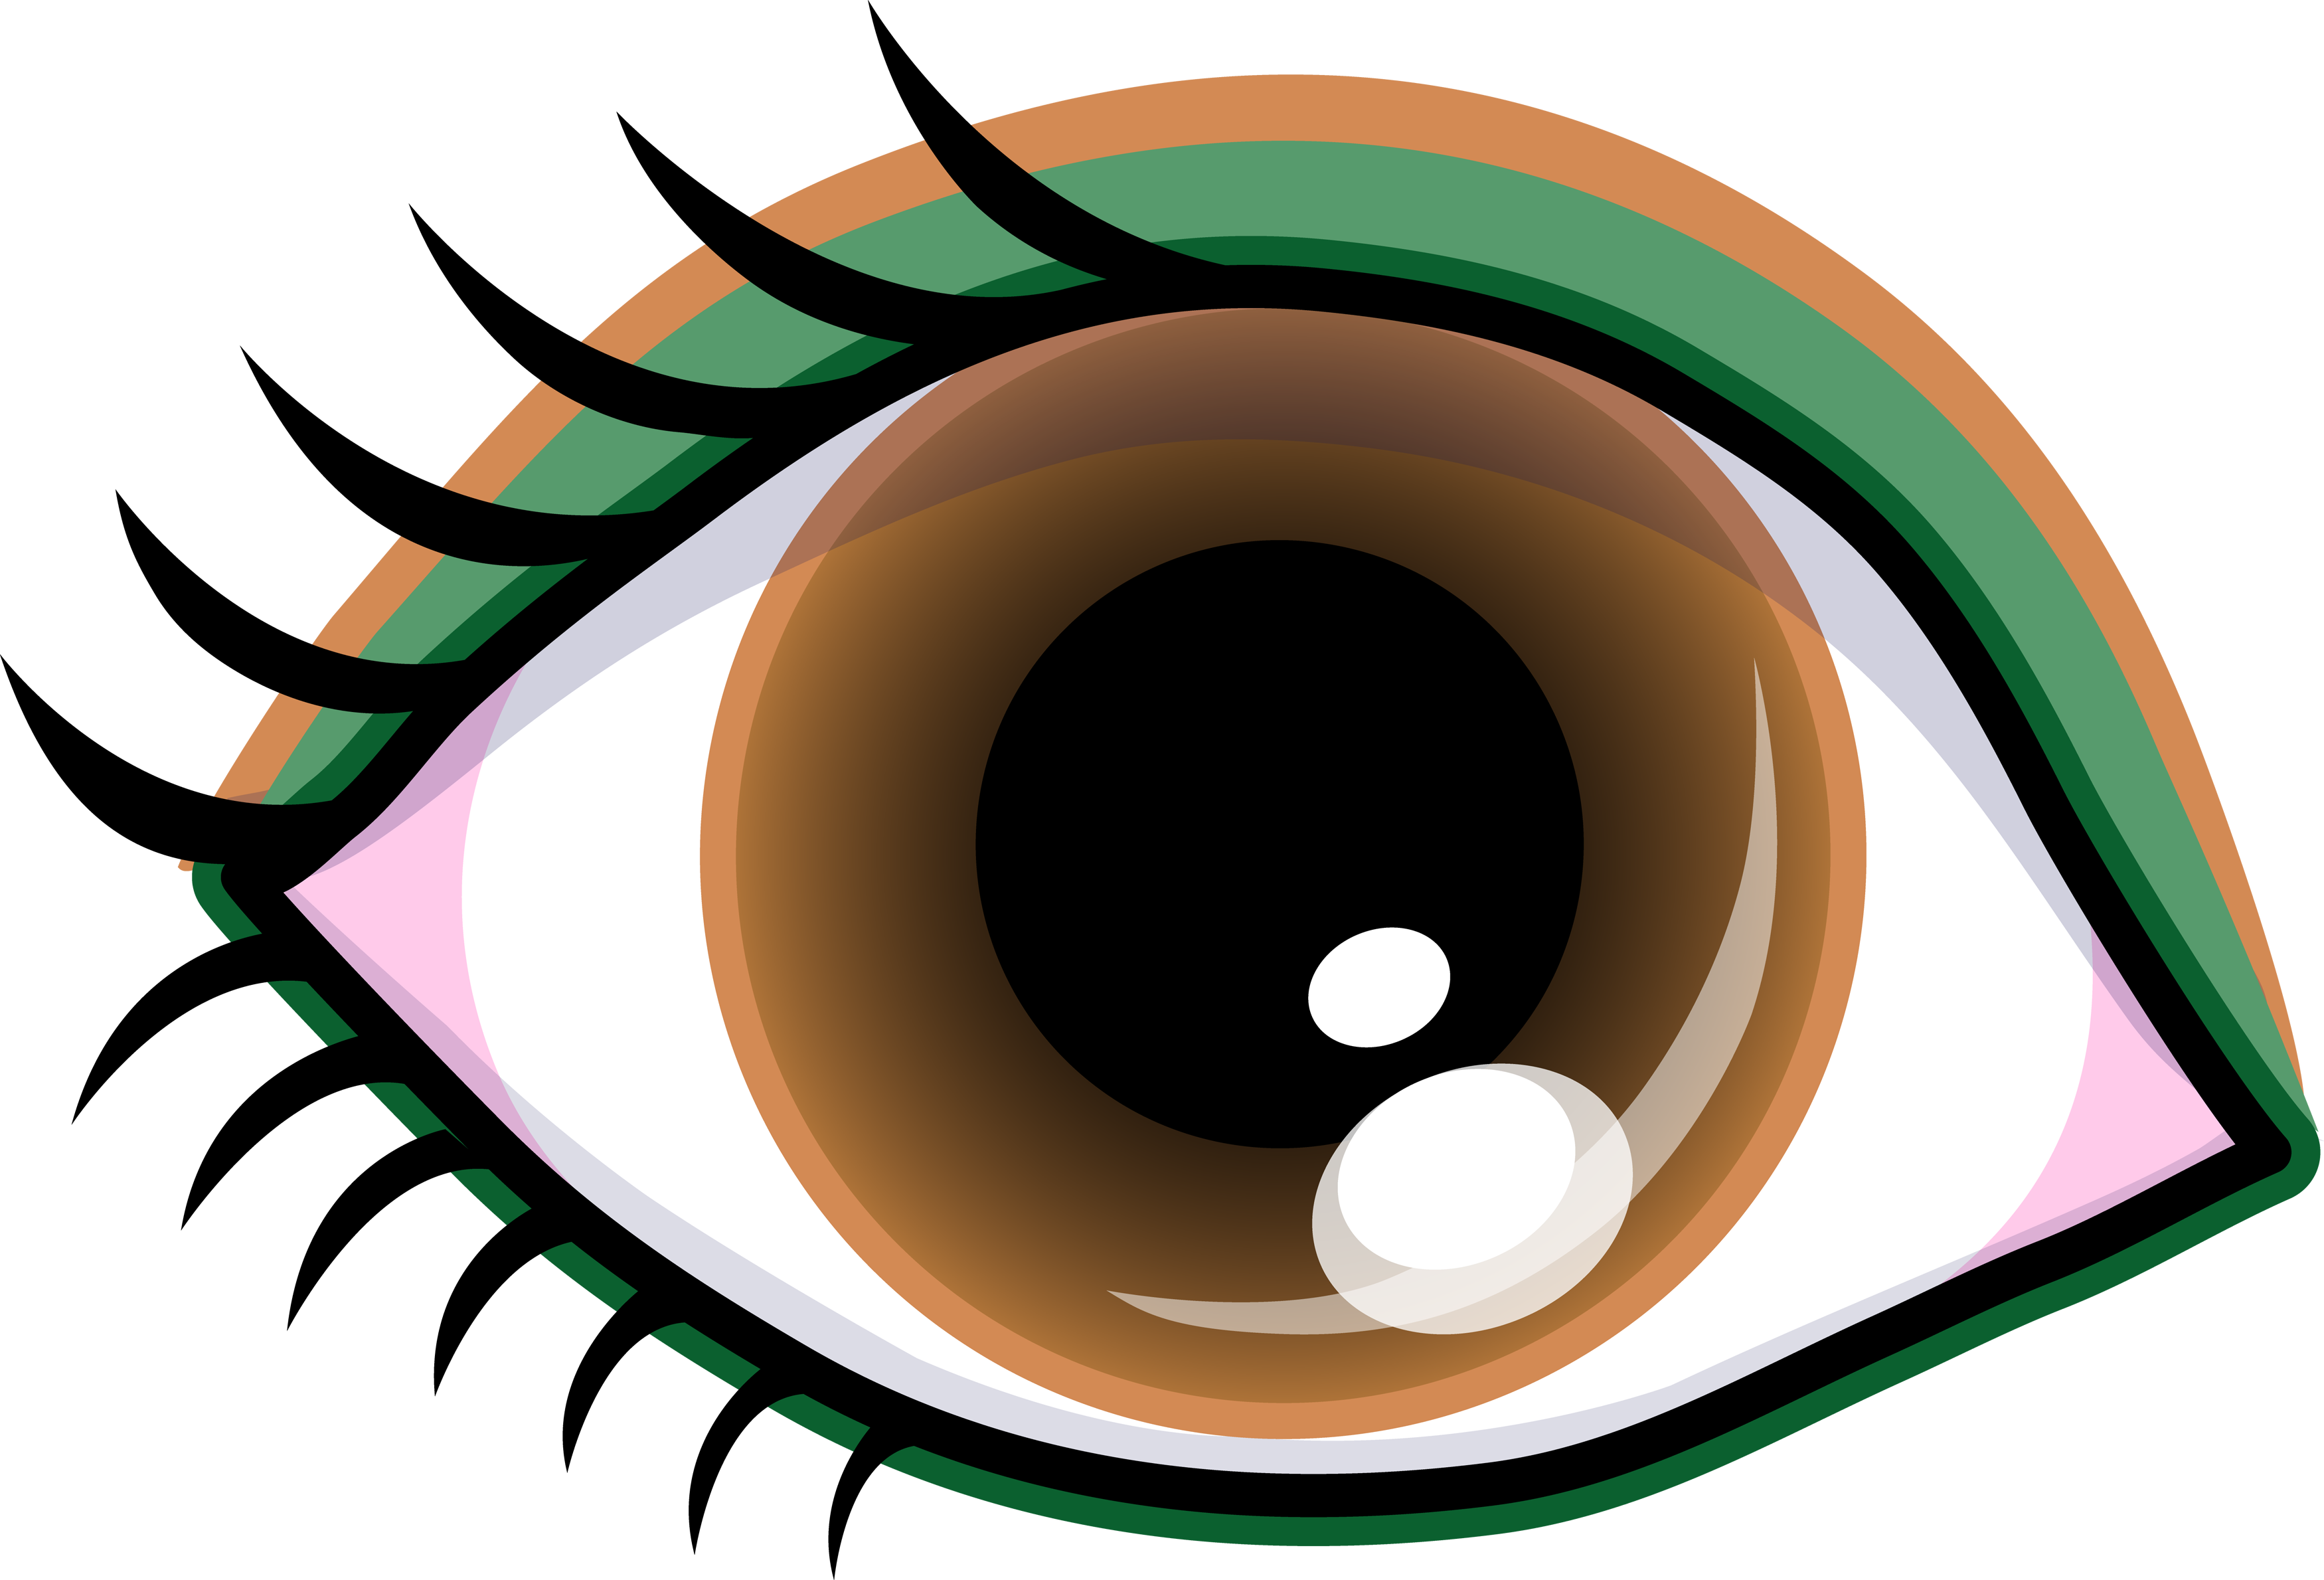 svg transparent download Clip art black and. Vision clipart cute eye